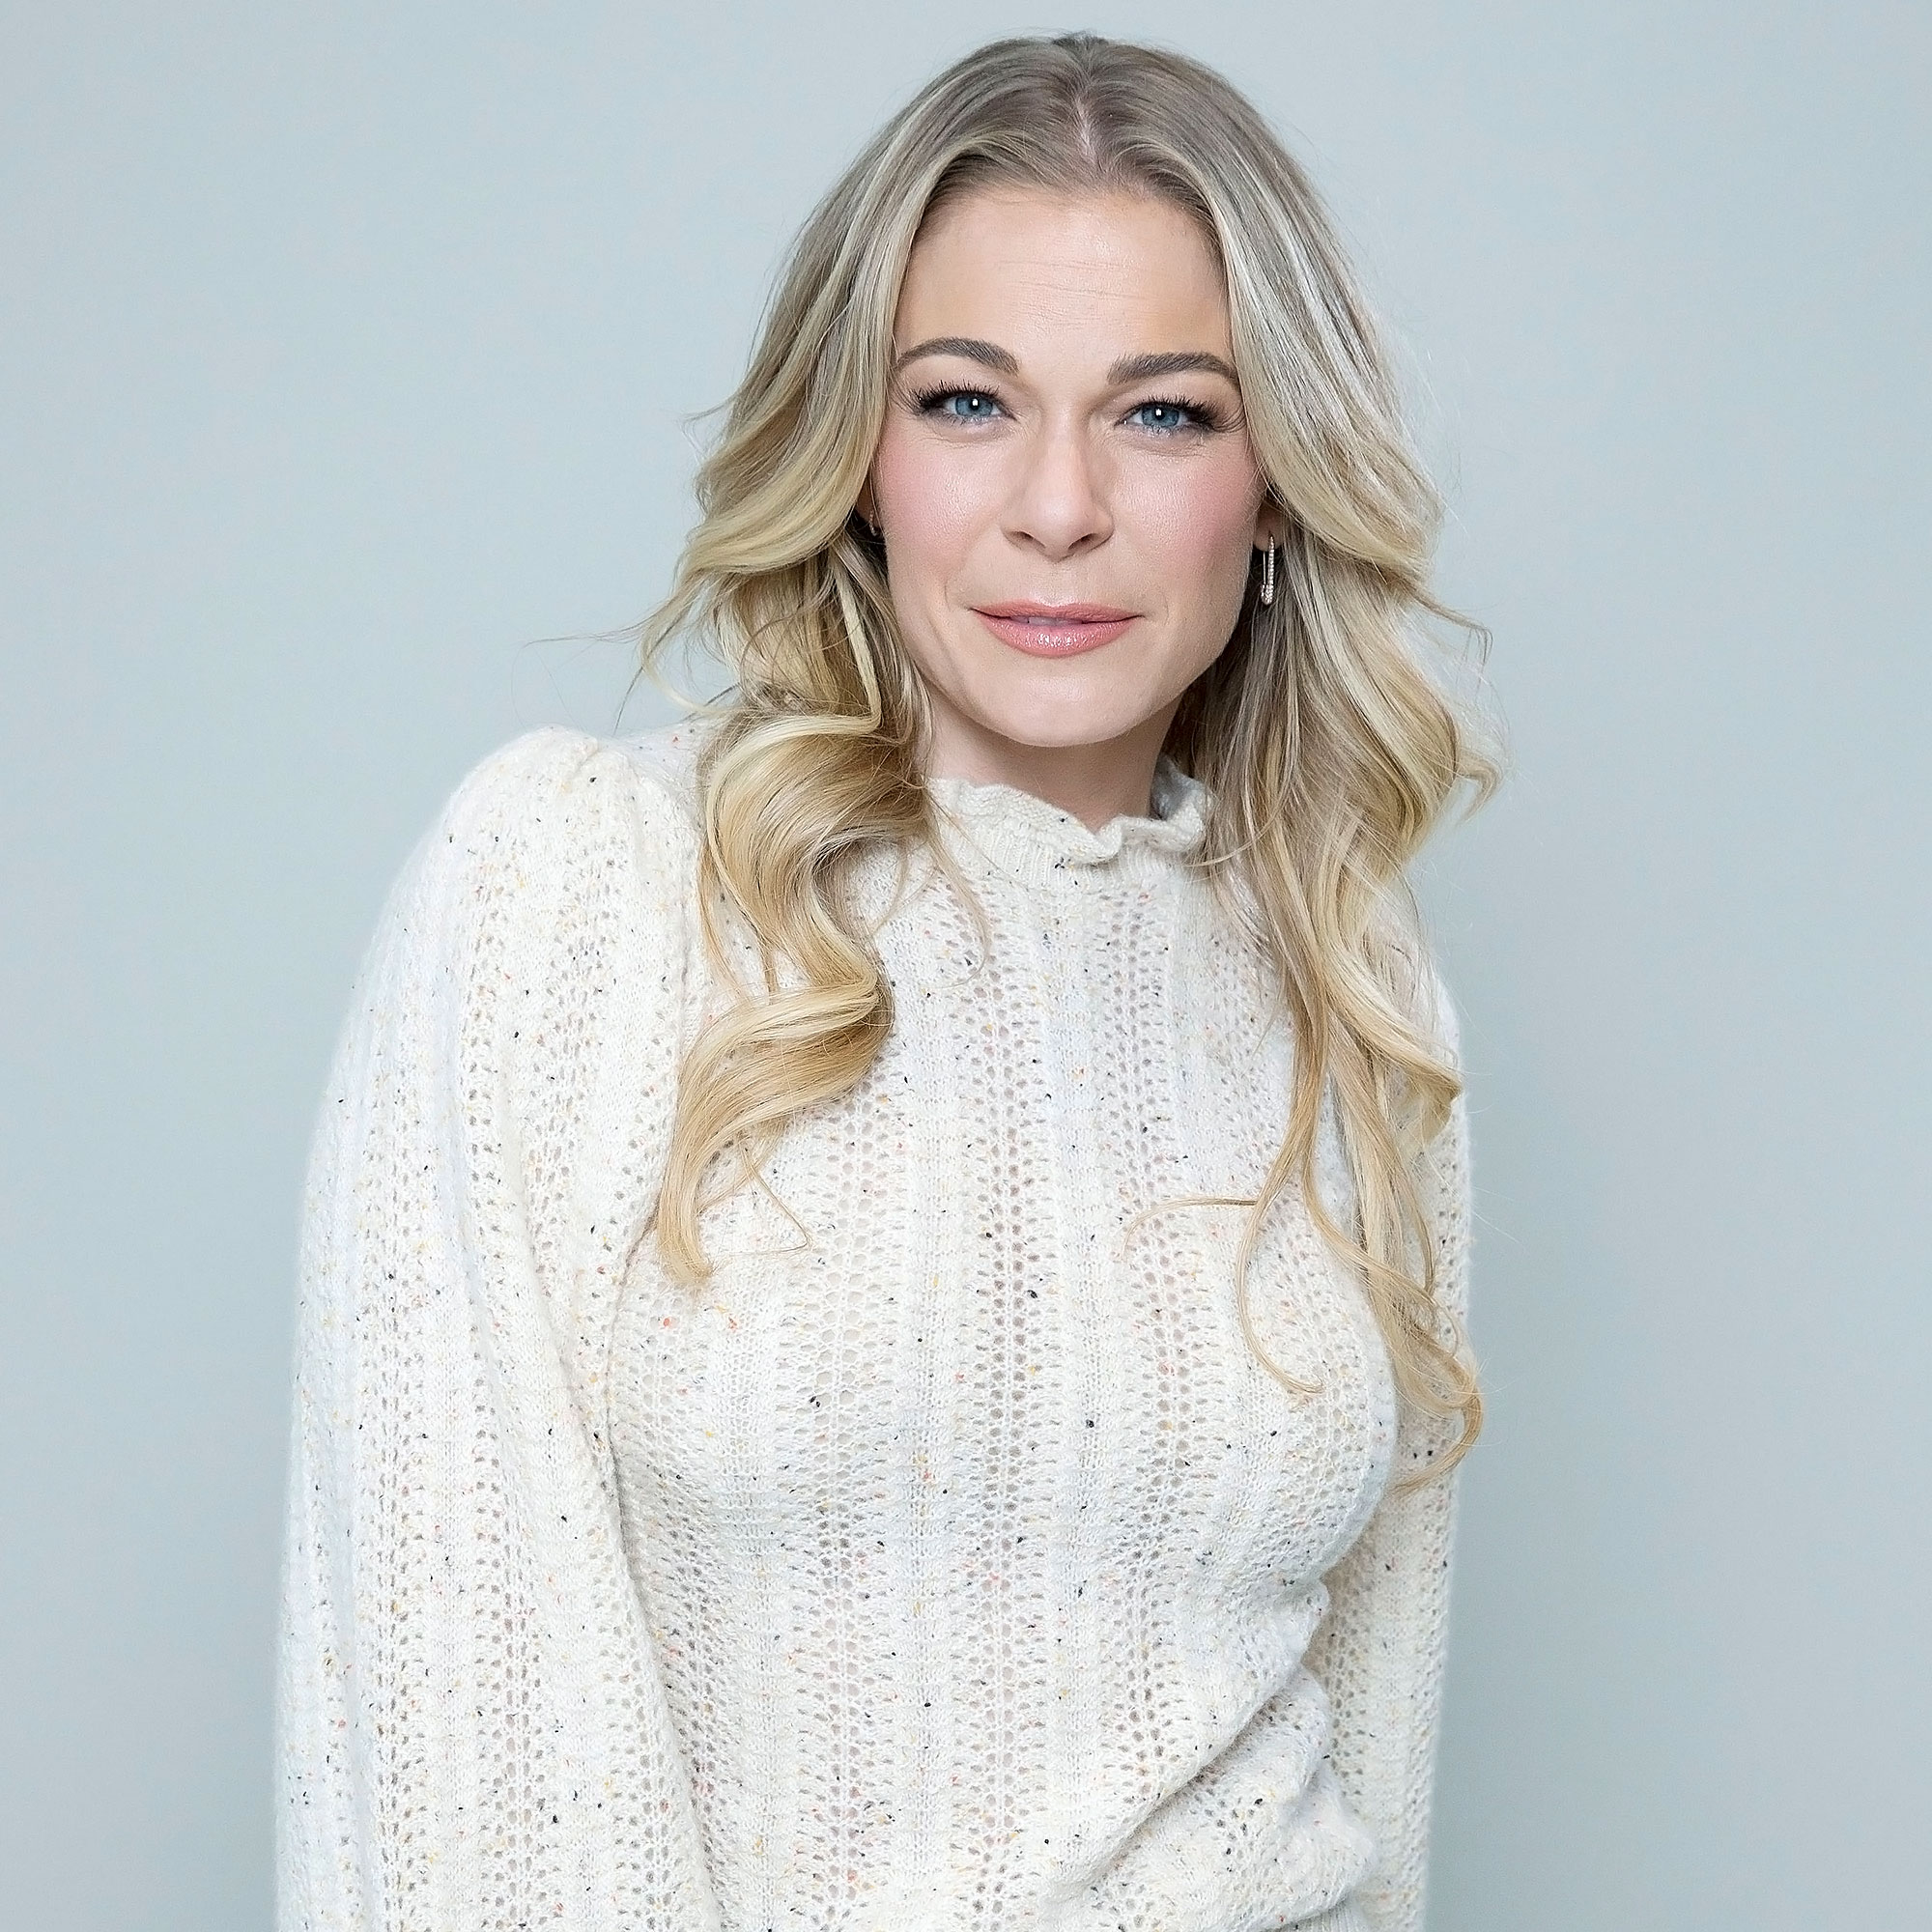 LeAnn Rimes Poses Nude After Psoriasis Returns for 1st